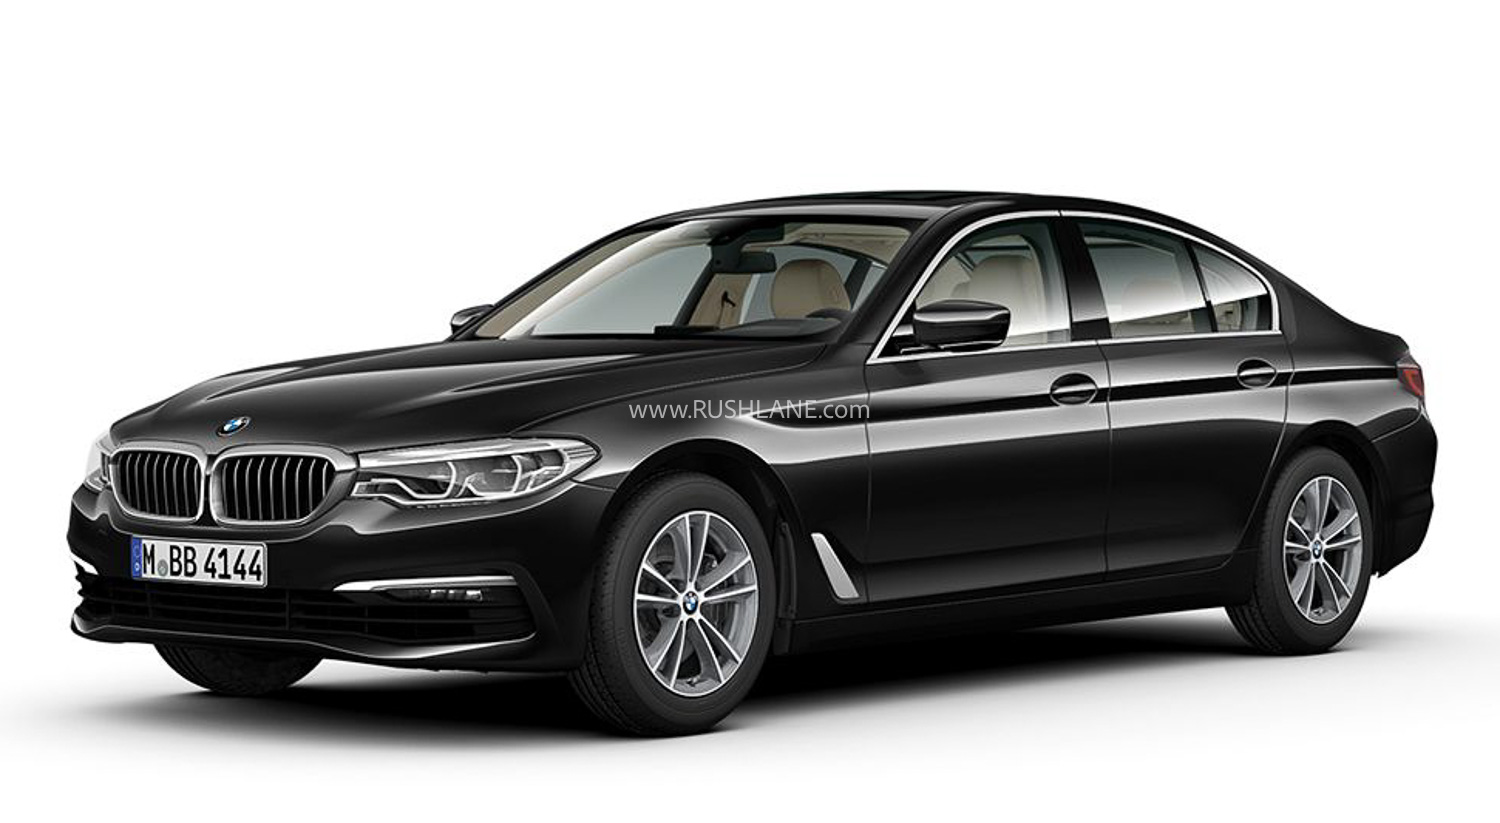 2020 BMW 530i launched